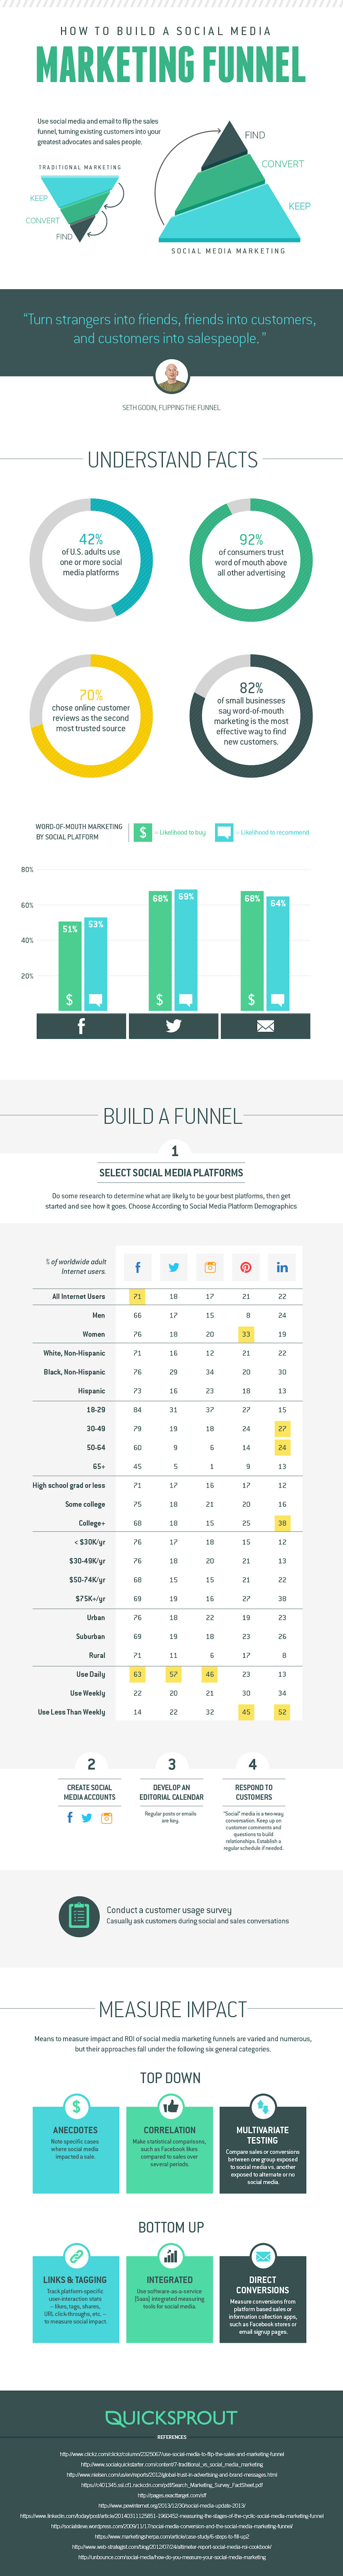 Social Media Marketing Funnel Comparison Platforms